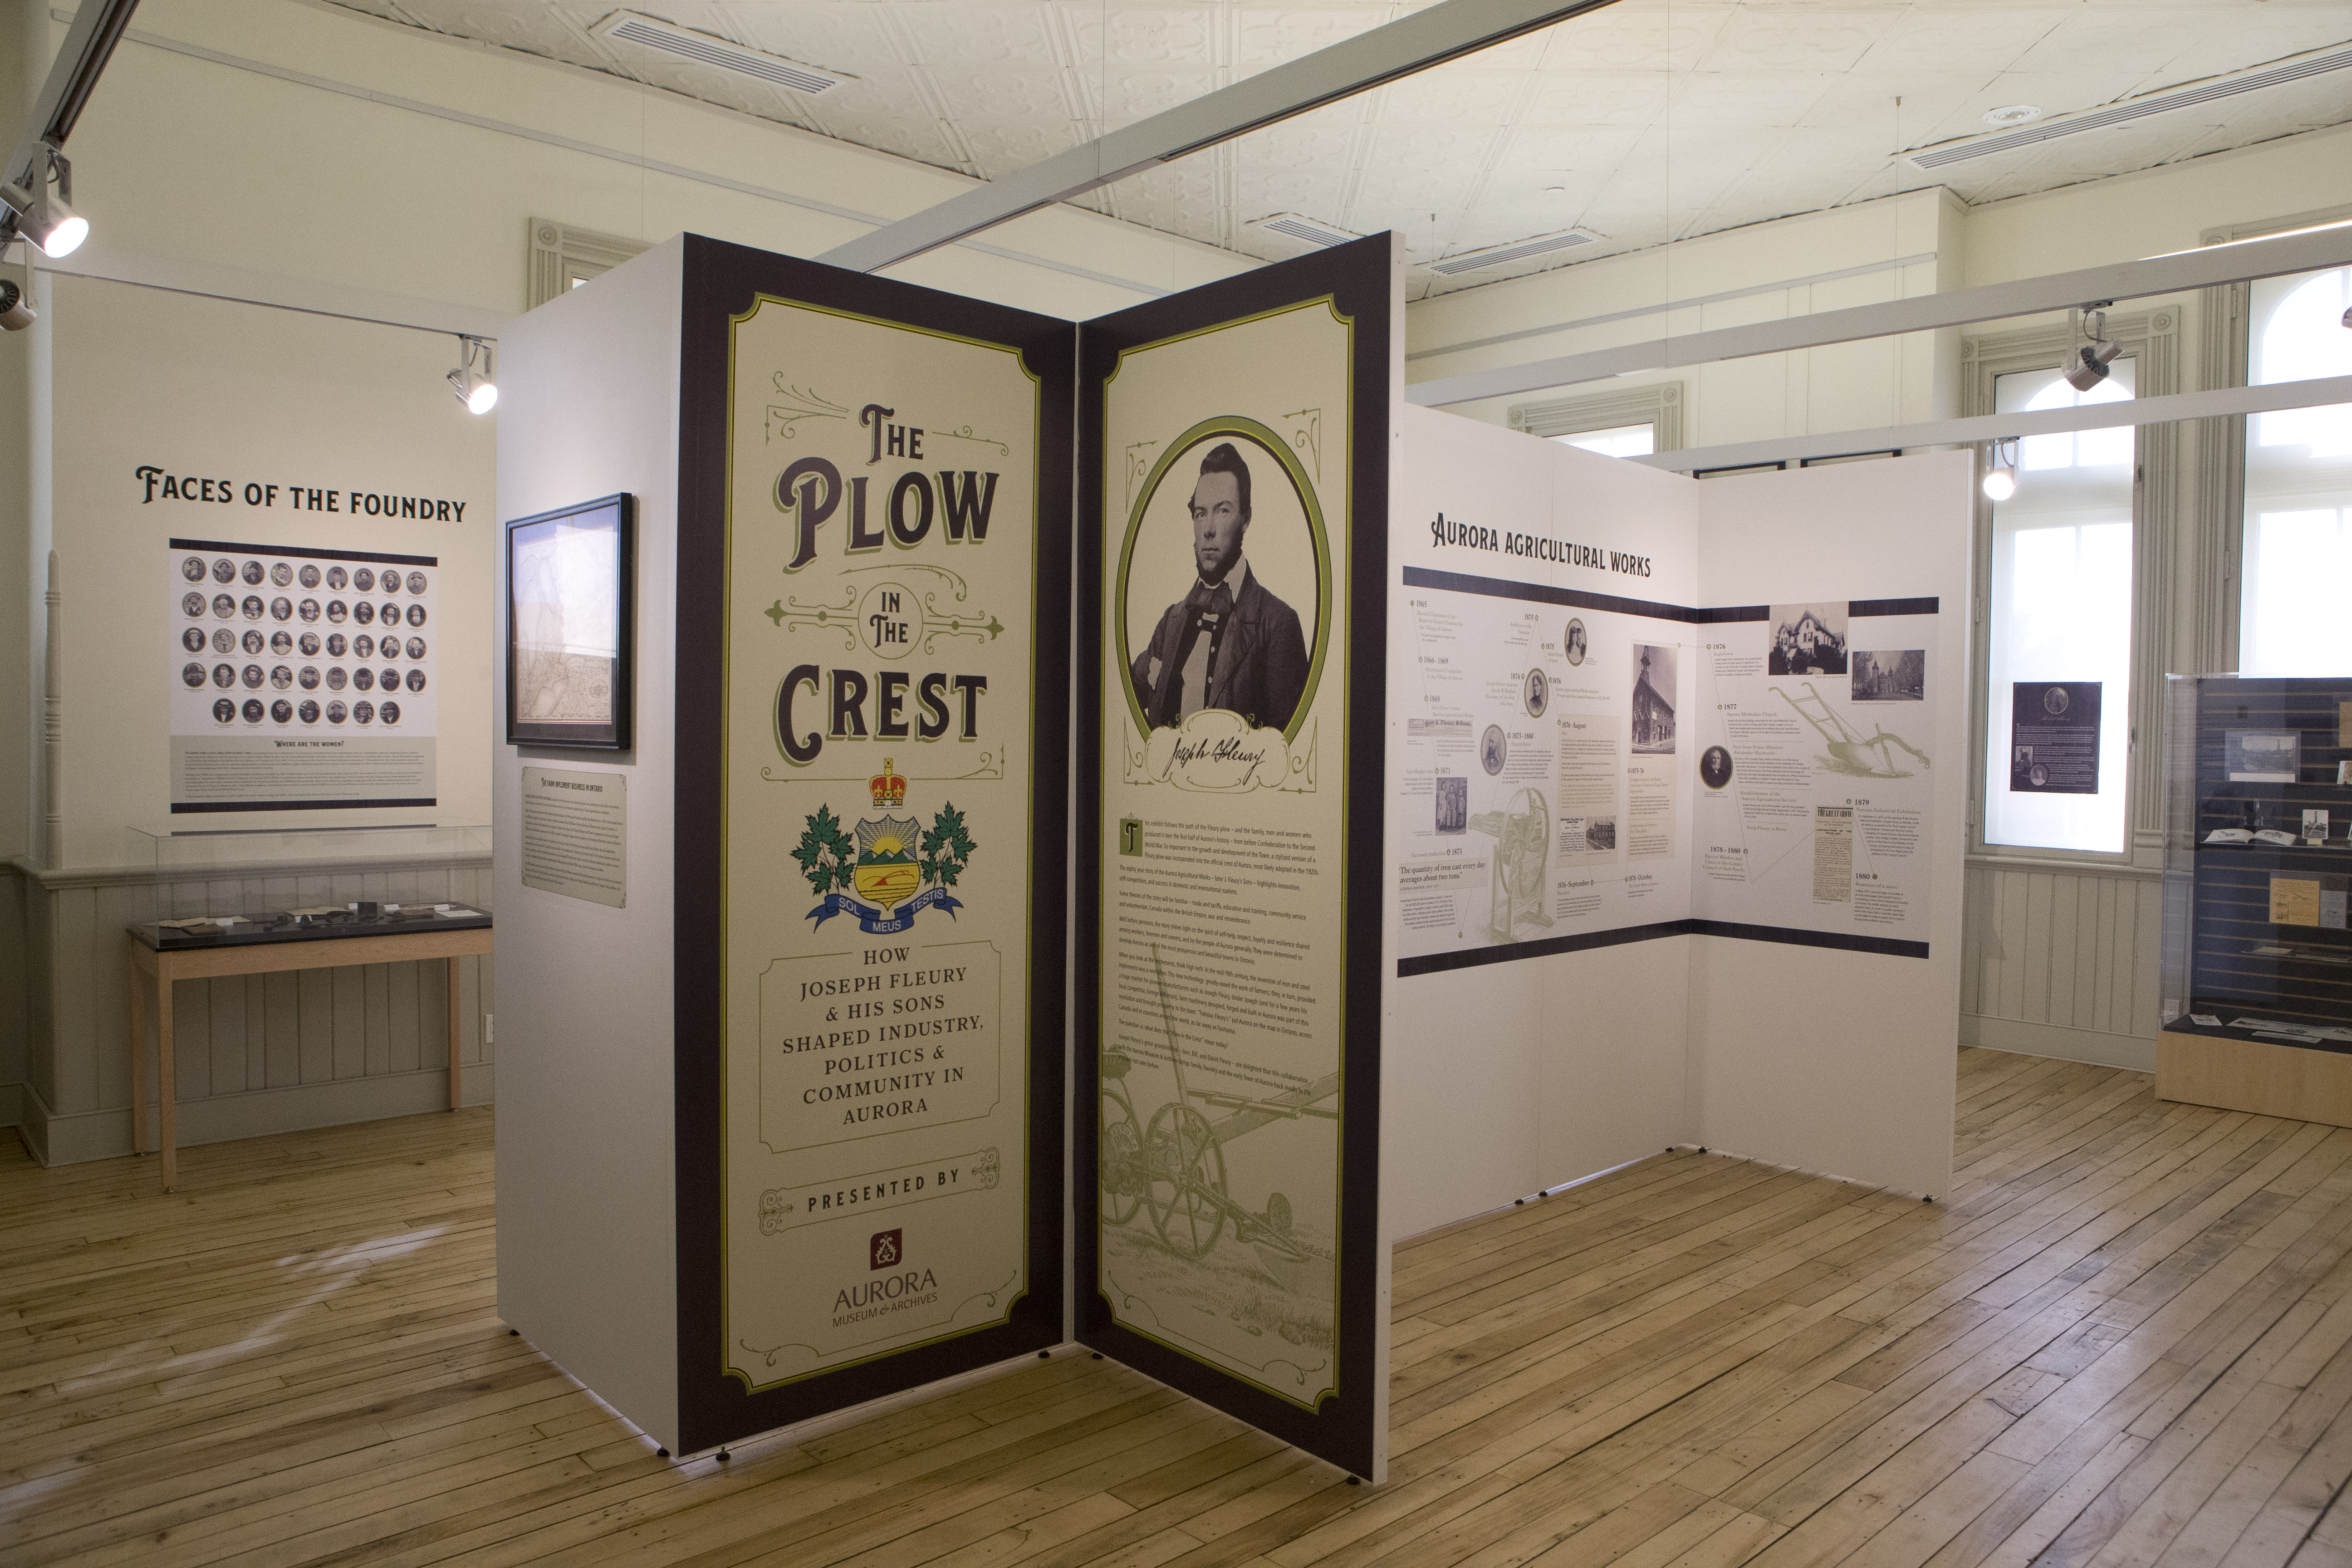 A museum exhibit in a wood-floored room with tall windows.